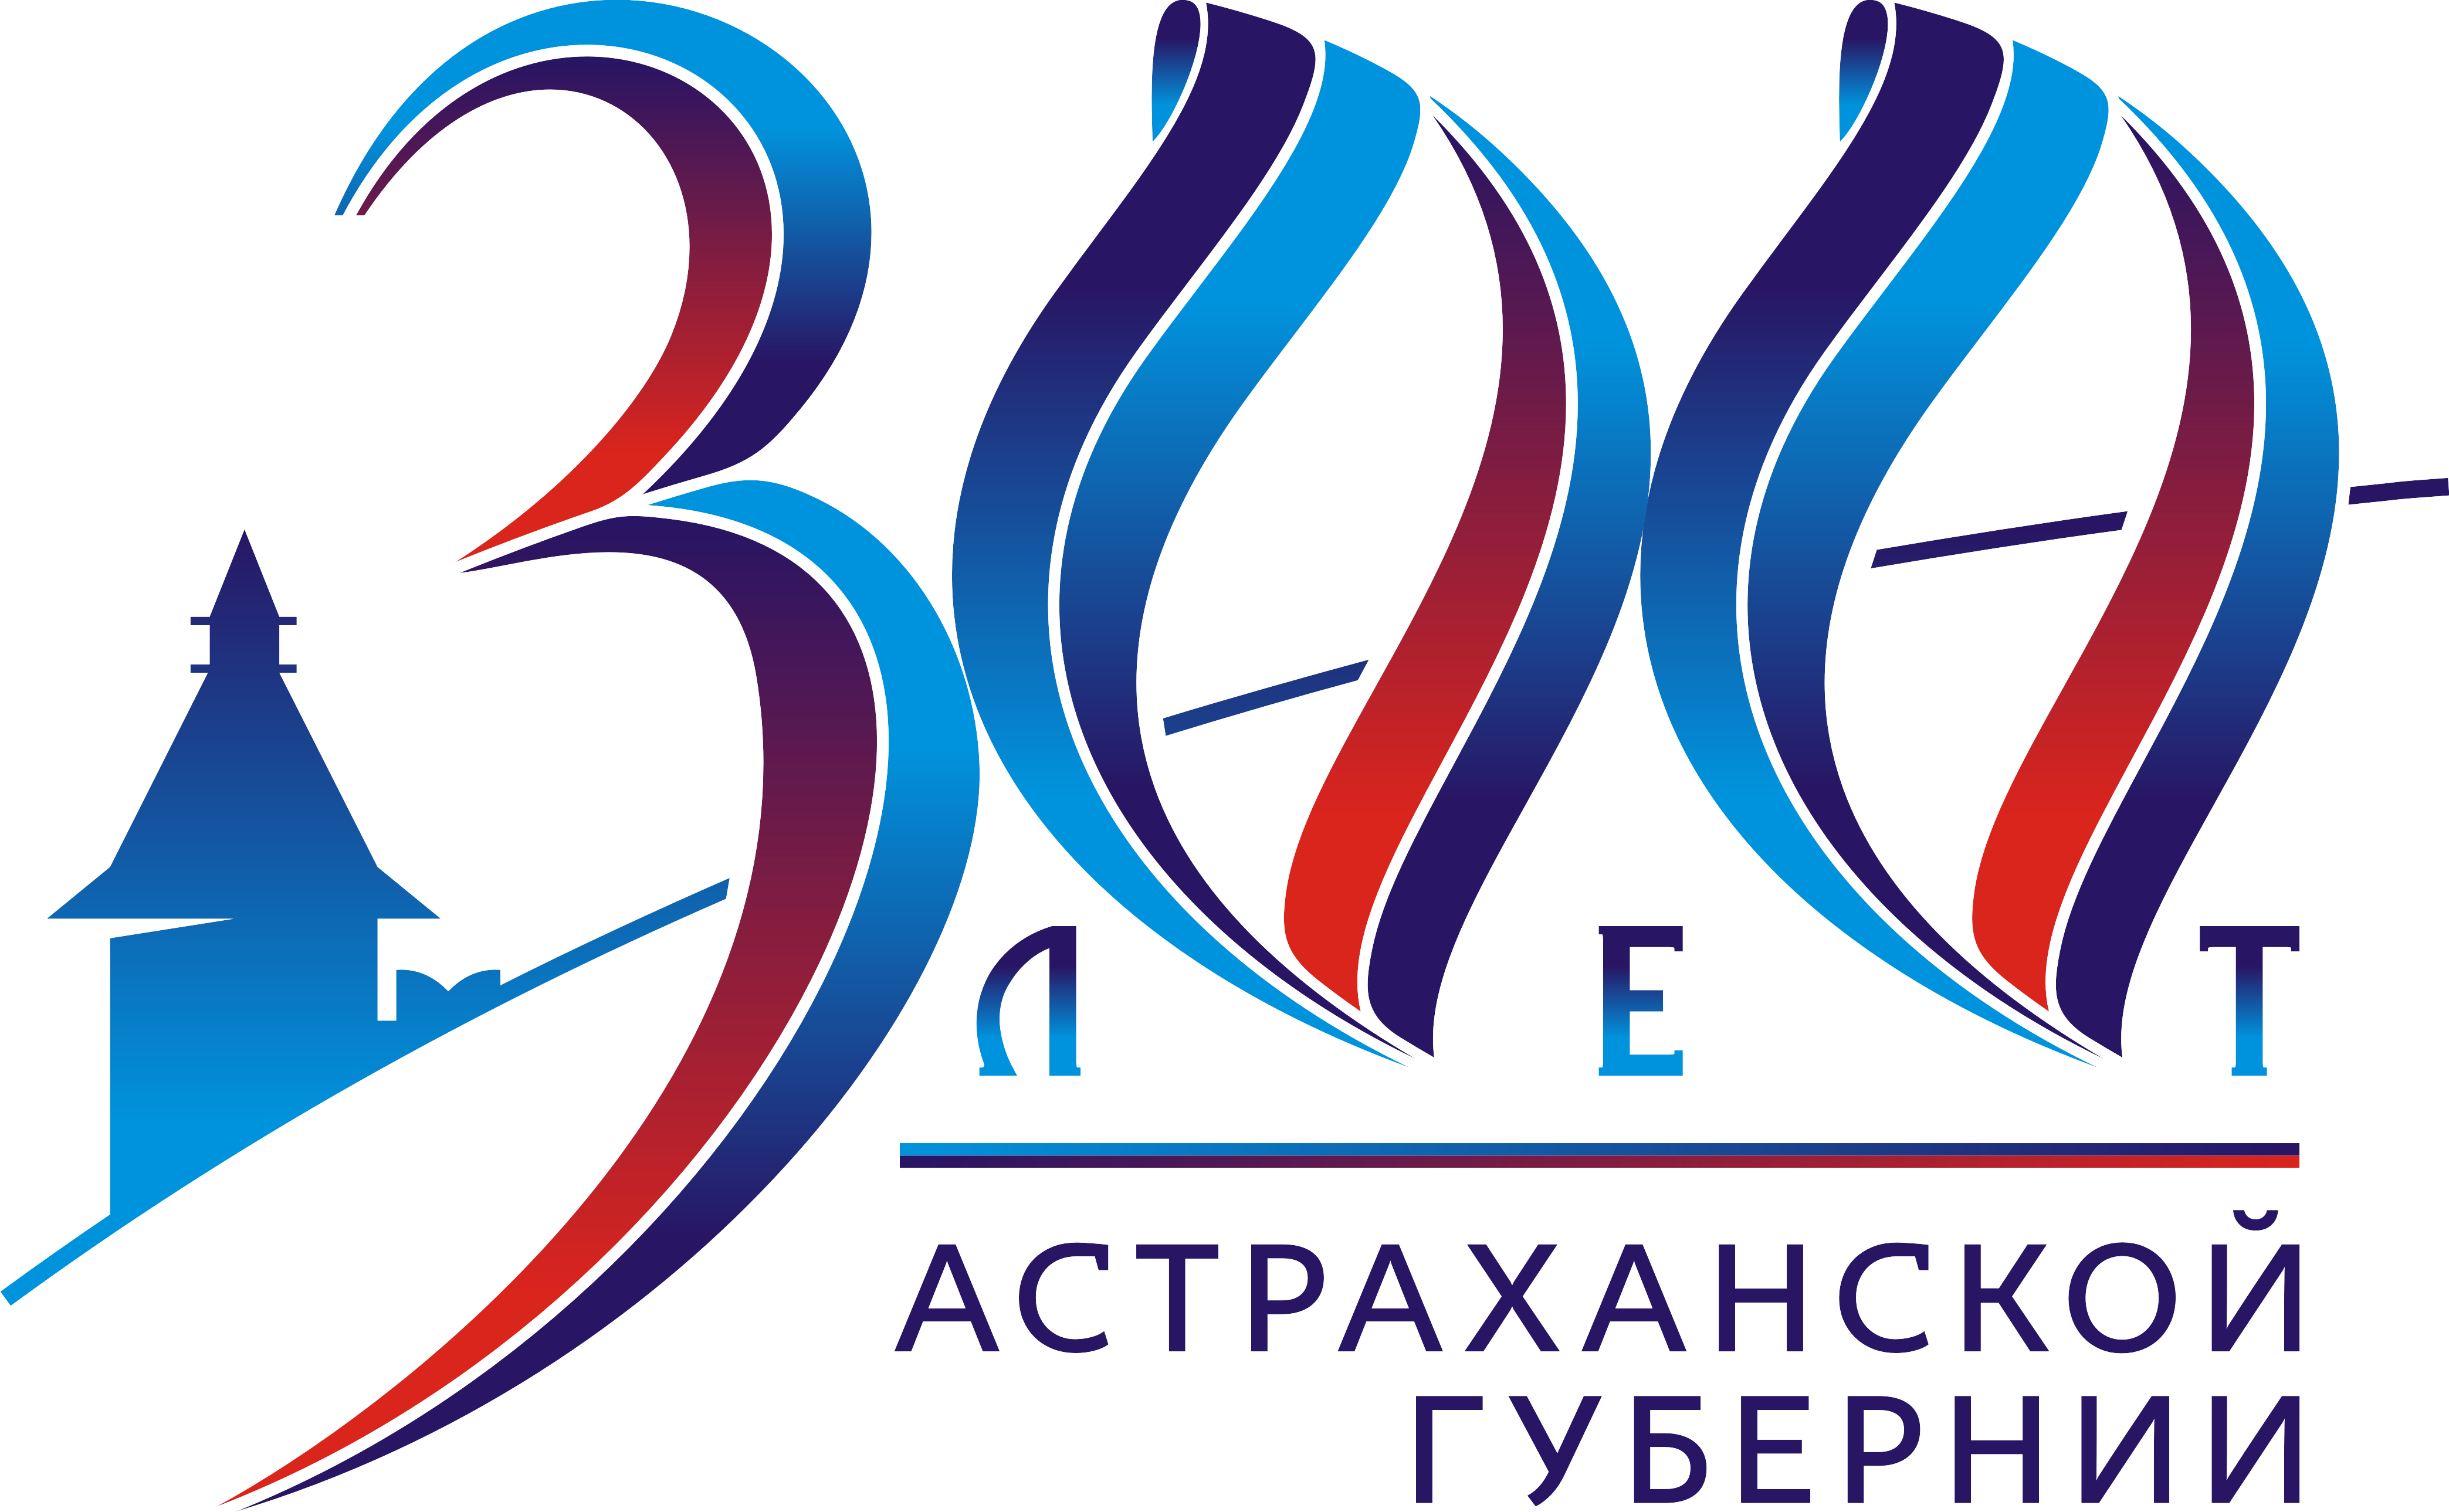 300th anniversary of the Astrakhan province